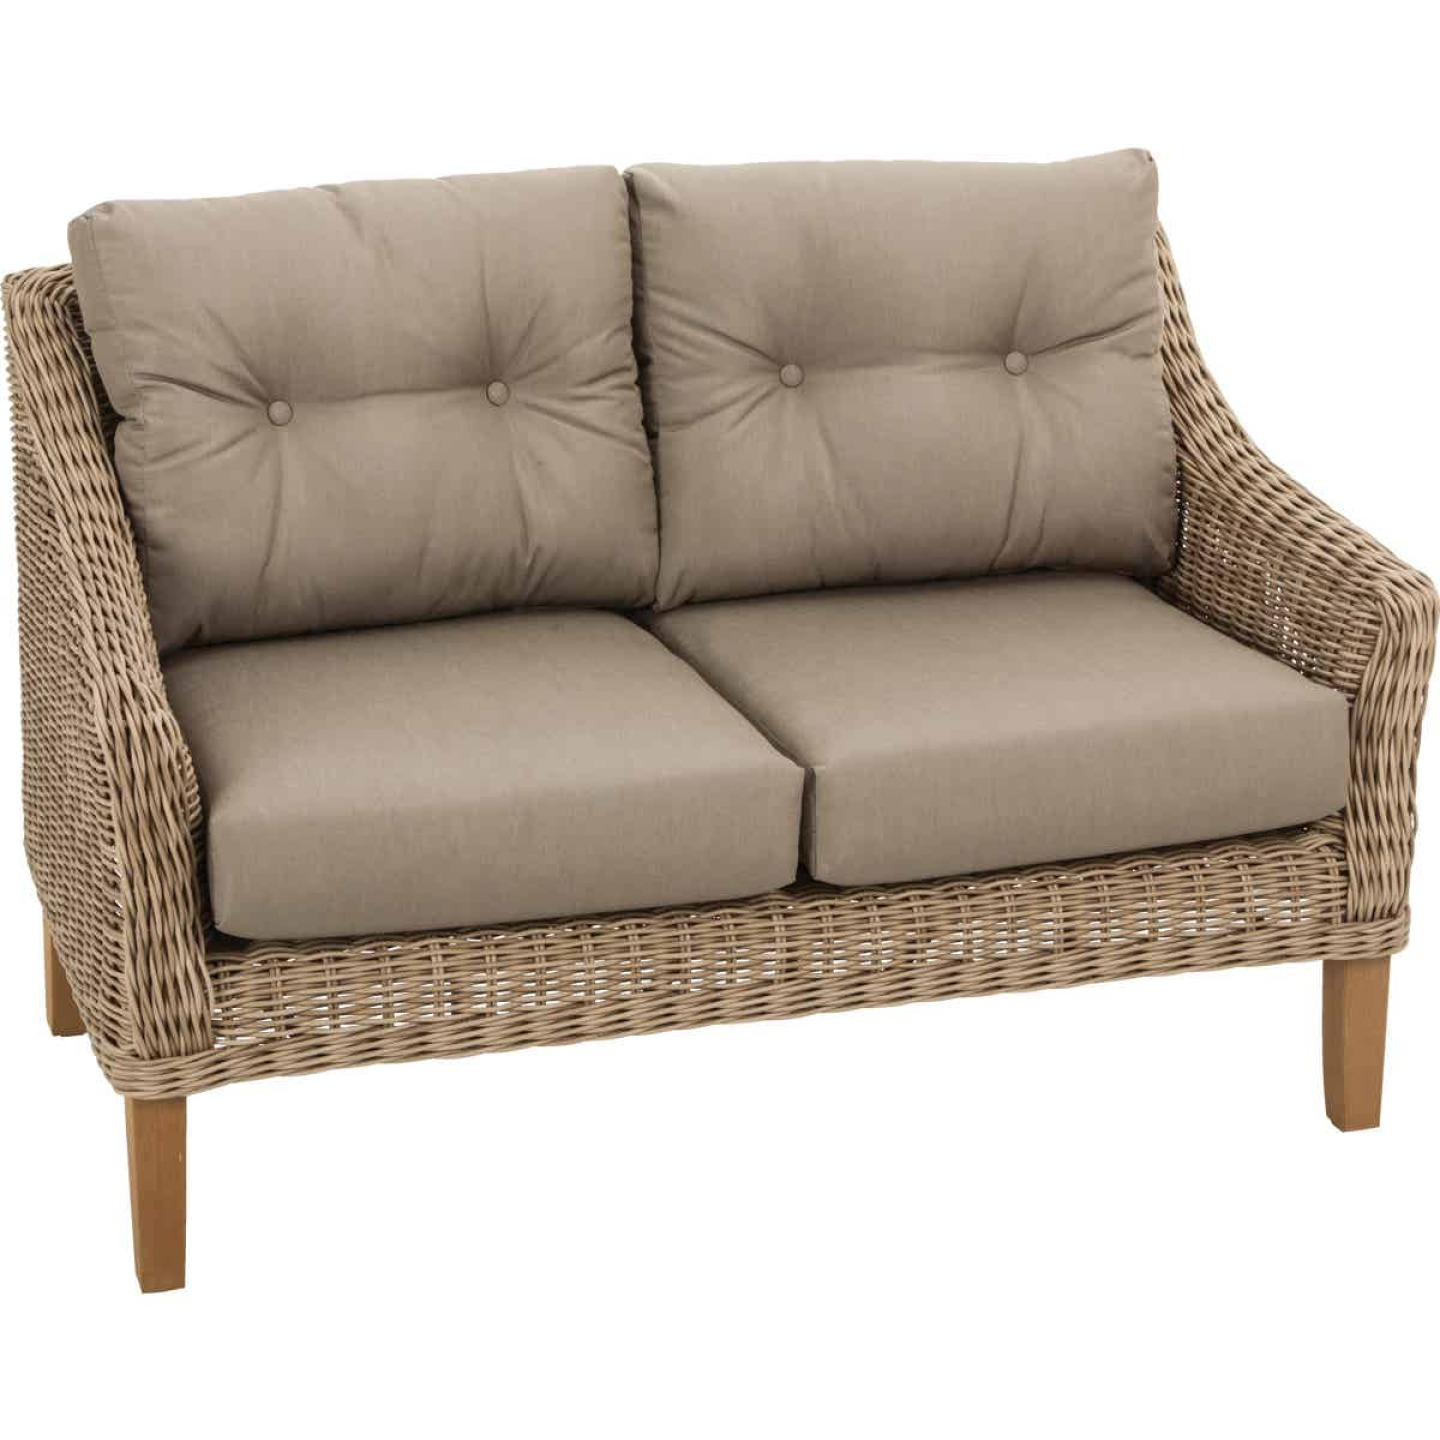 Cambria 2-Person 51 In. W. x 31 In. H. x 29 In. D. Wicker Loveseat Image 1